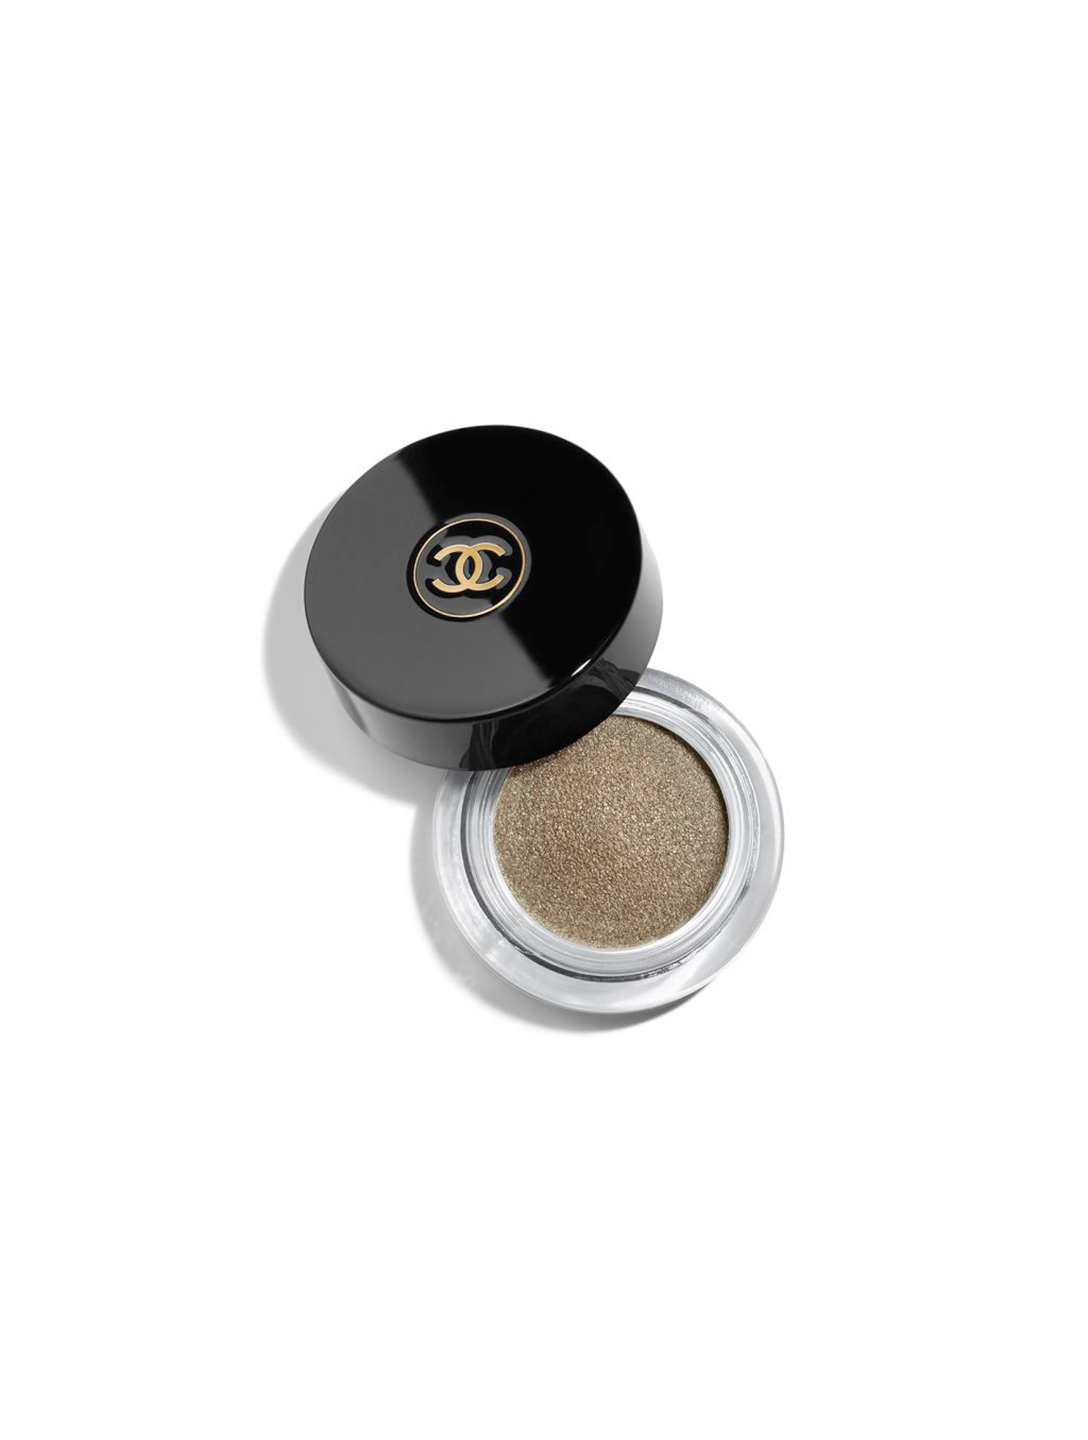 CHANEL Longwear Cream Eyeshadow CHANEL Bronze